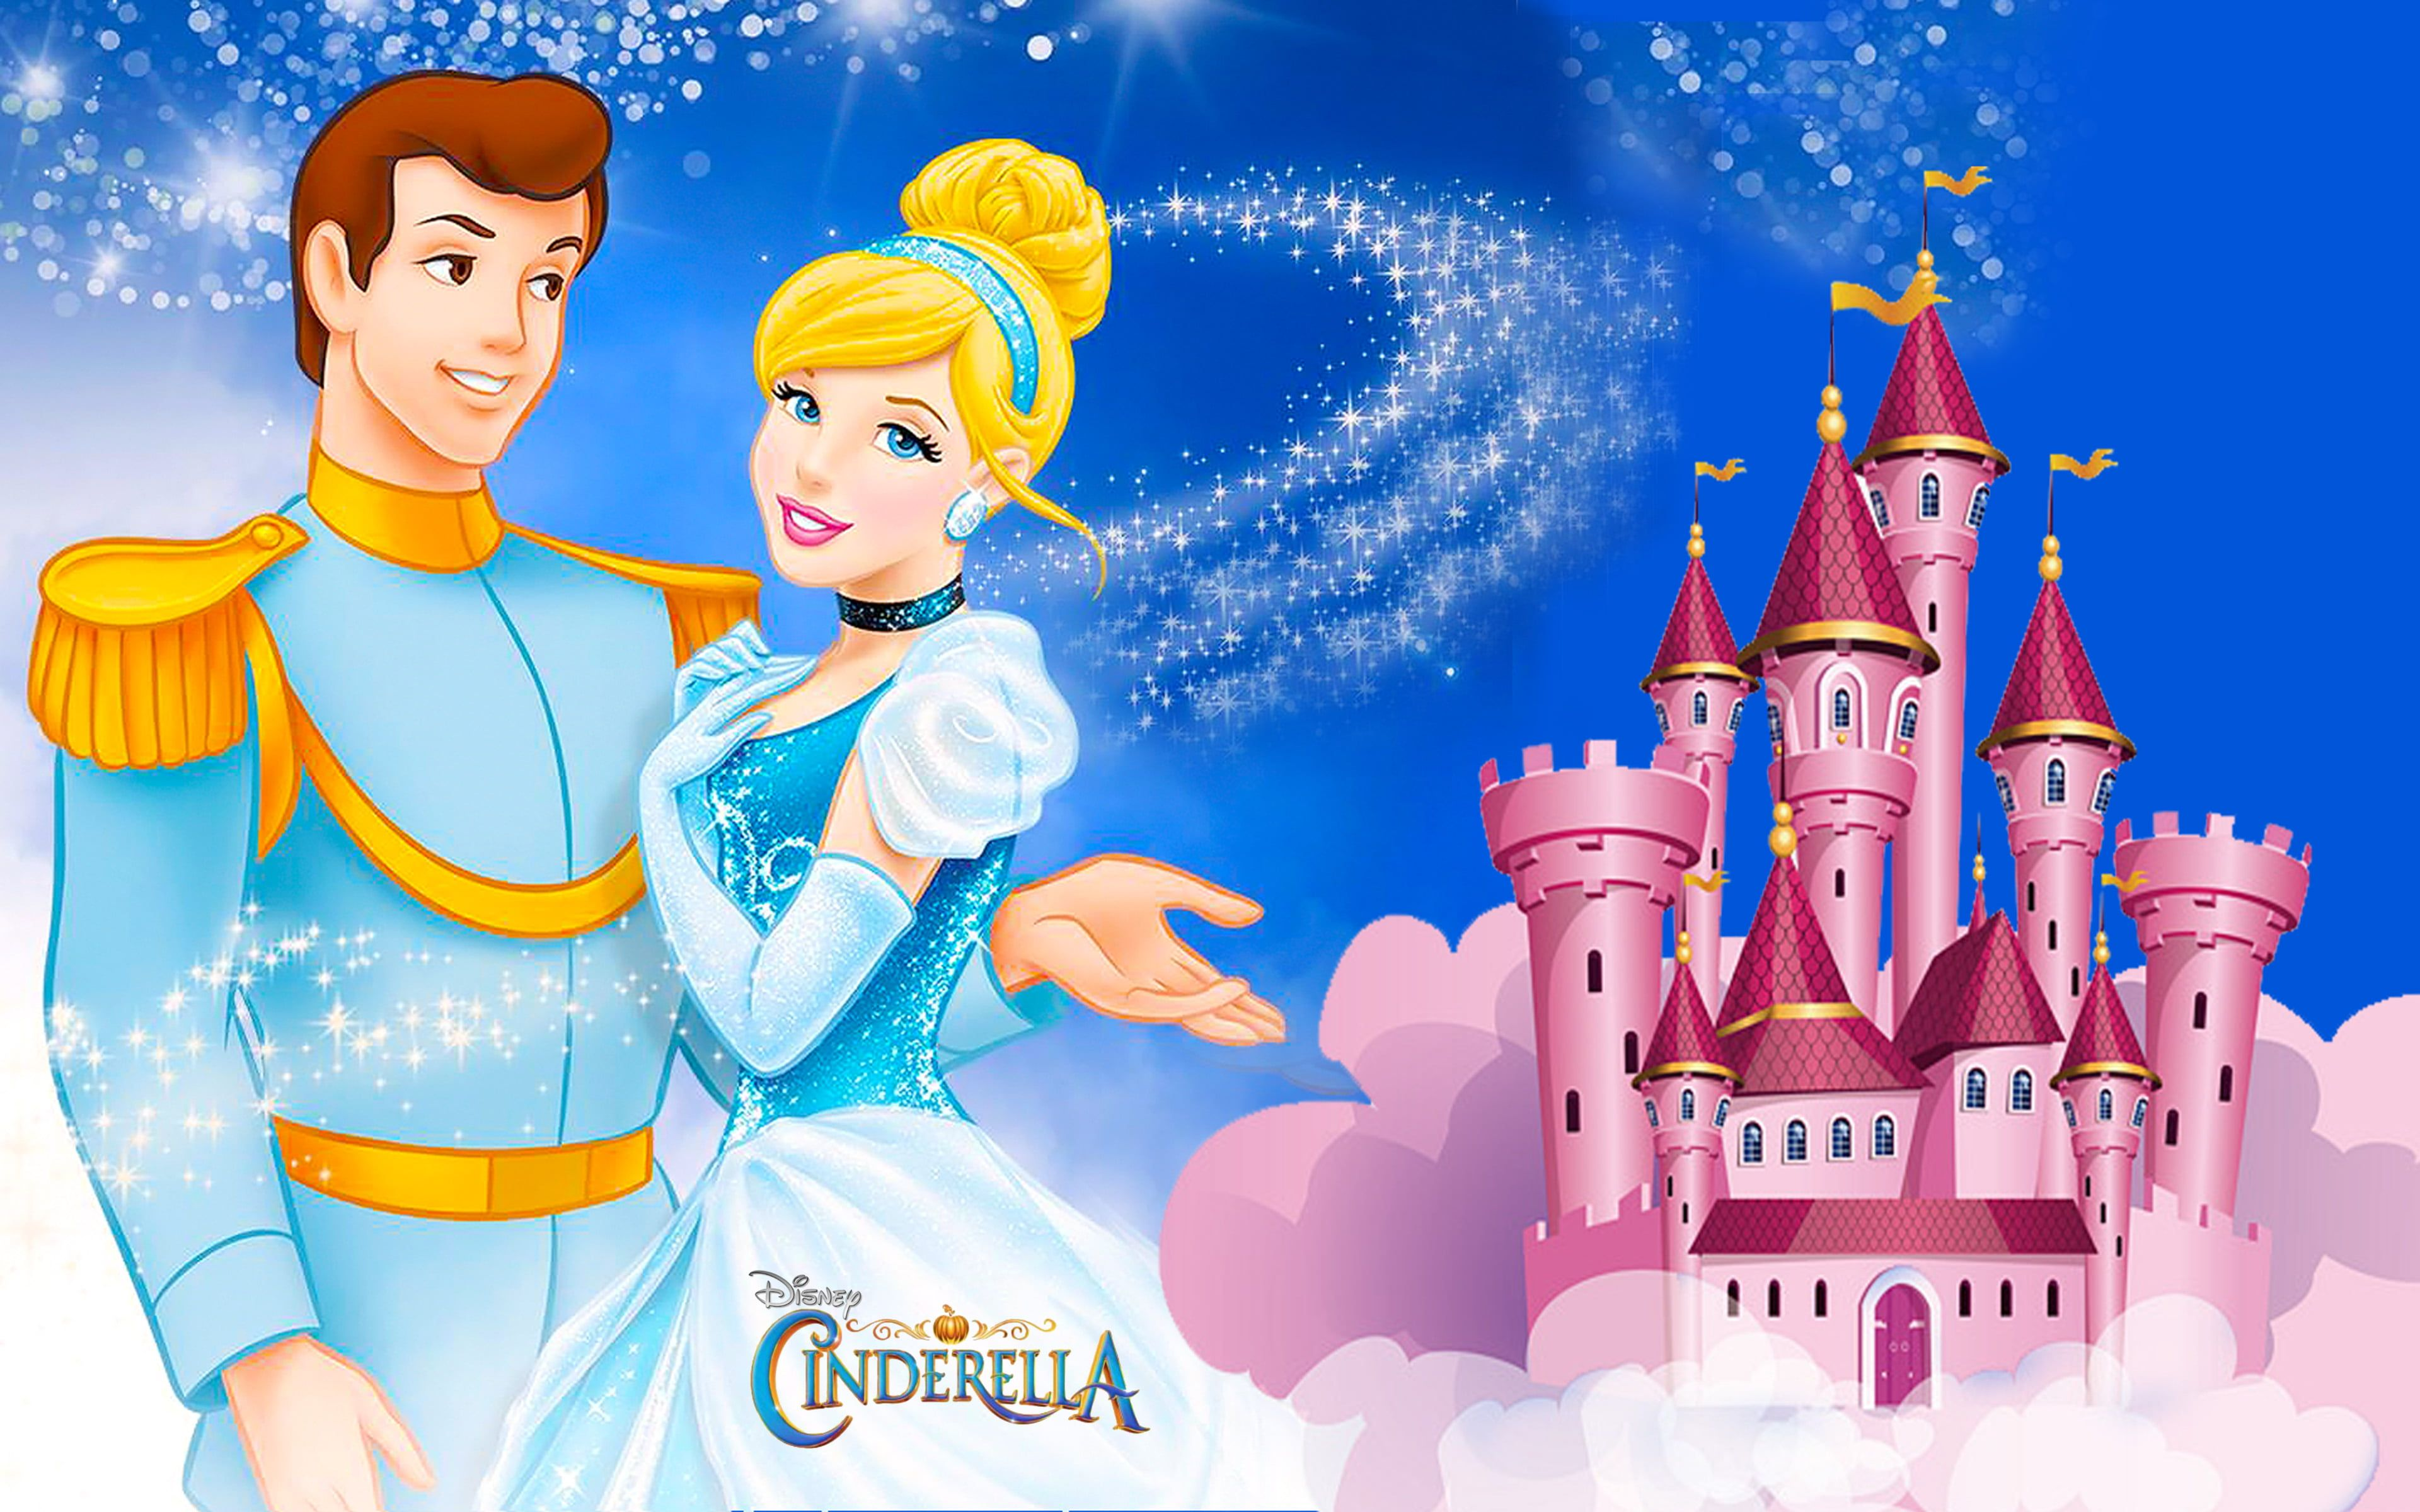 Prince Charming And Cinderella Disney Hd Love Wallpaper For Mobile Phone And Computer Love Wallpaper For Mobile Cinderella Disney Wallpapers For Mobile Phones